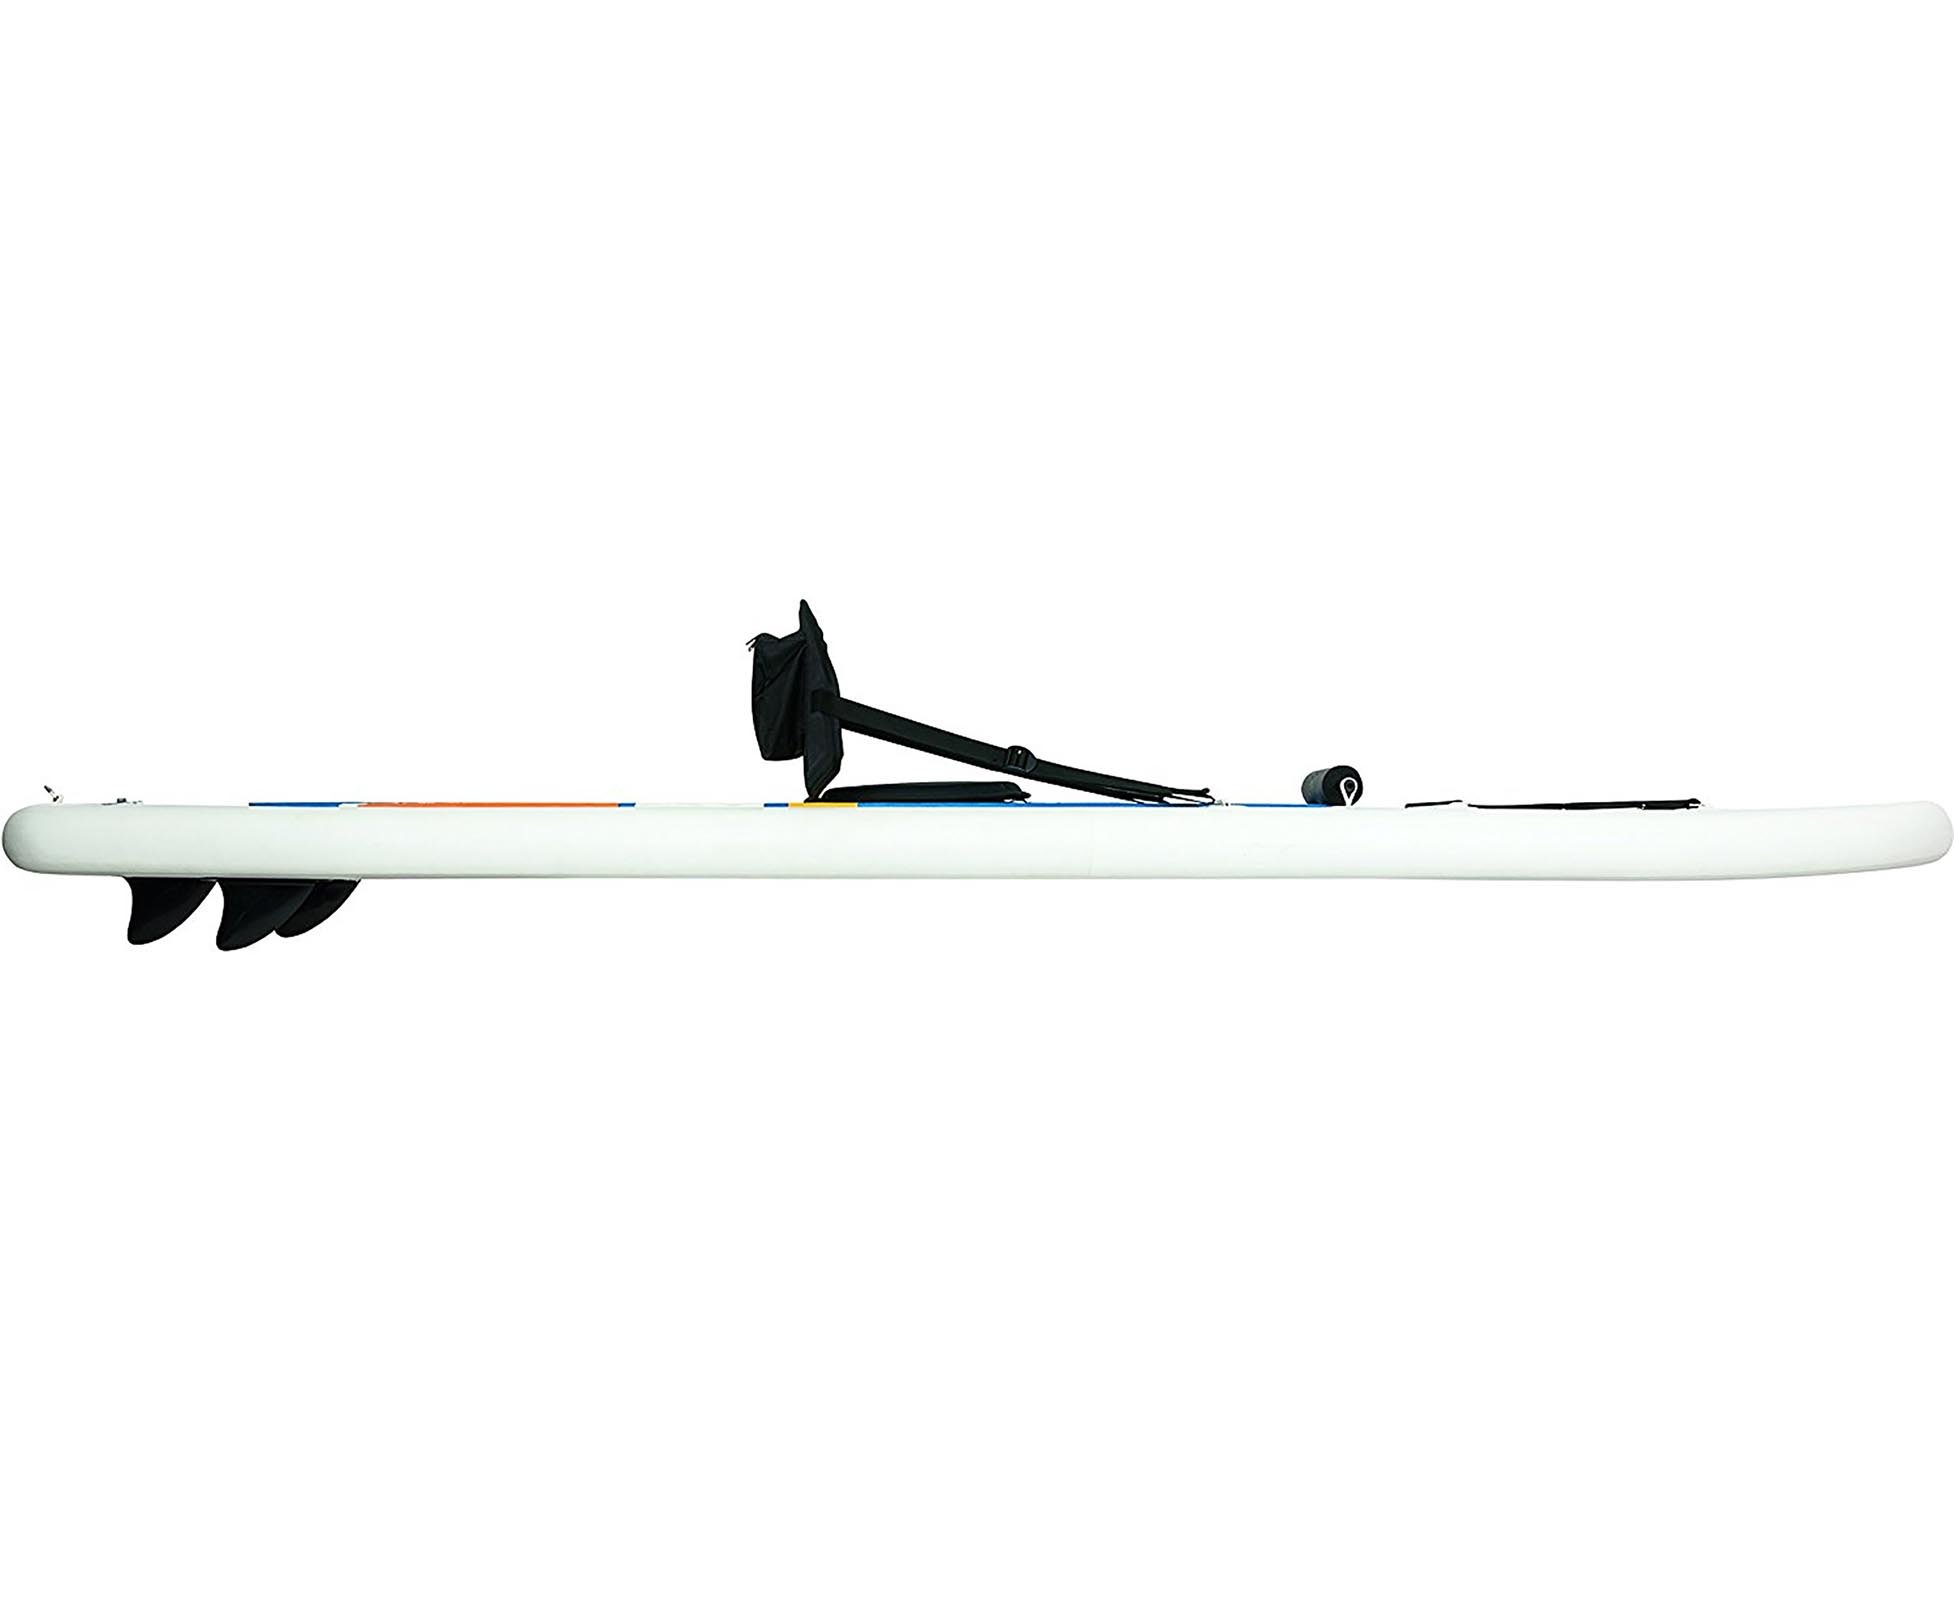 HydroForce White Cap Inflatable Stand Up Paddleboard SUP and Kayak 10' by Bestway (Image #2)